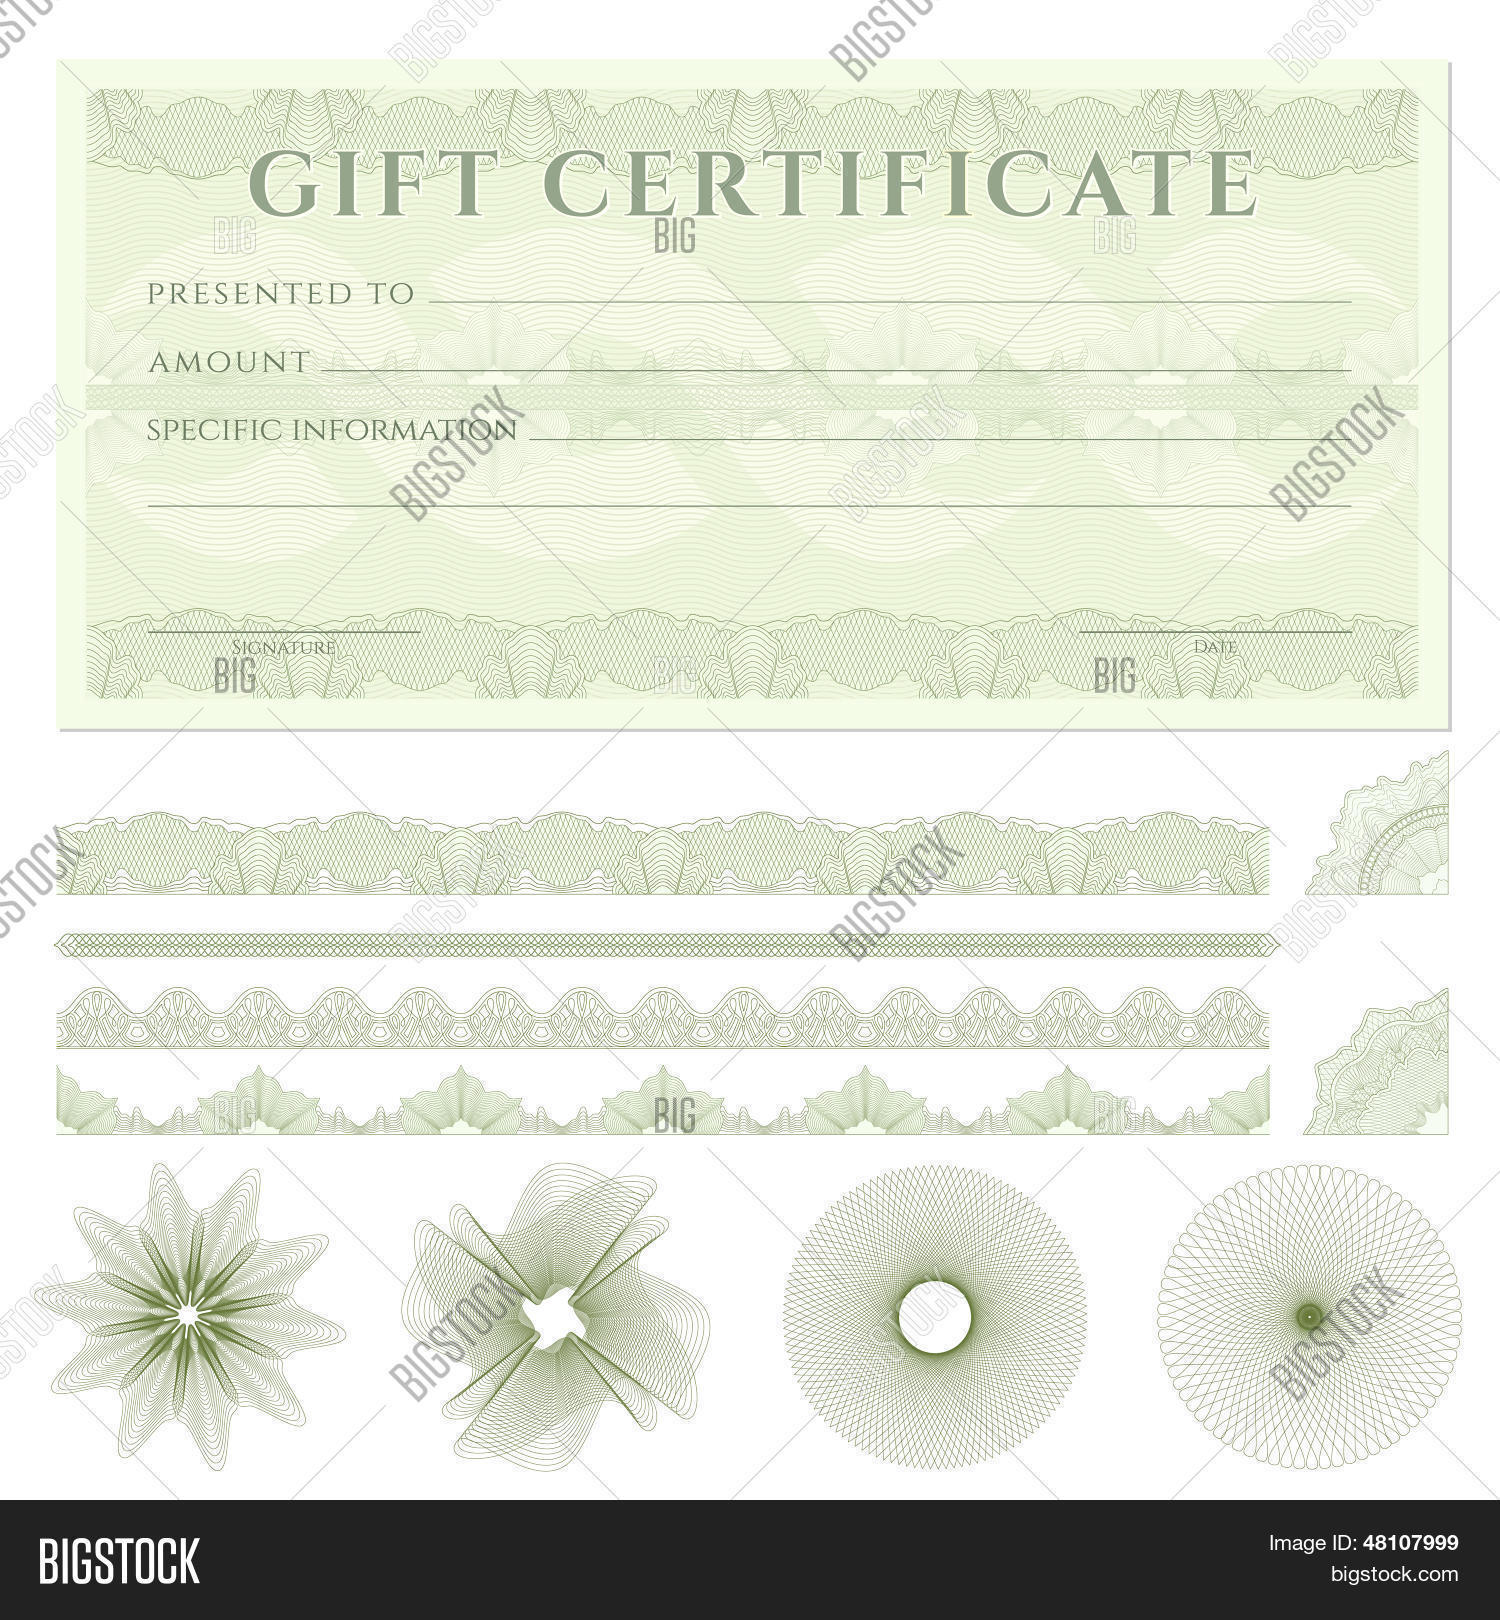 gift certificate voucher coupon template banknote money gift certificate voucher coupon template banknote money currency cheque